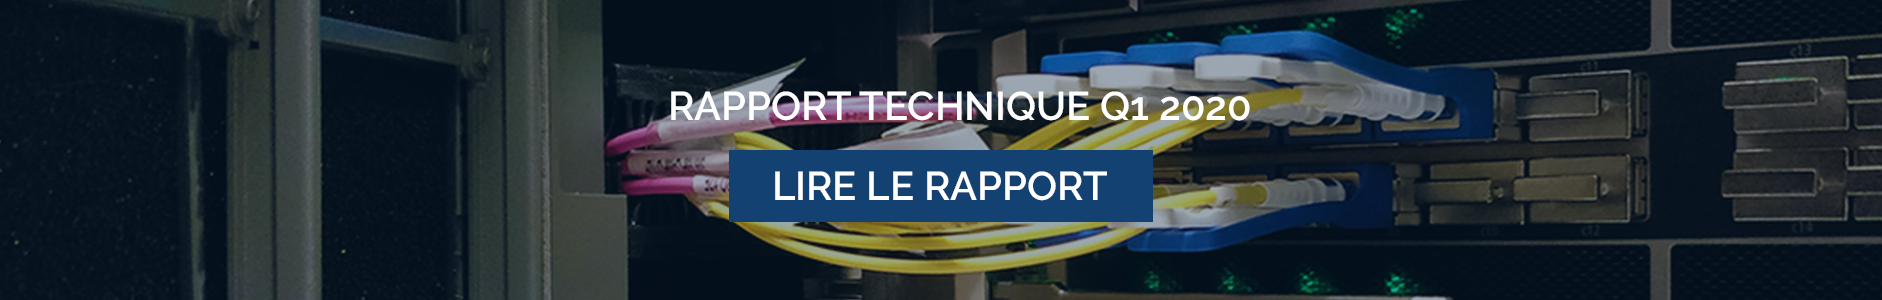 RAPPORT TECHNIQUE Q1 2020